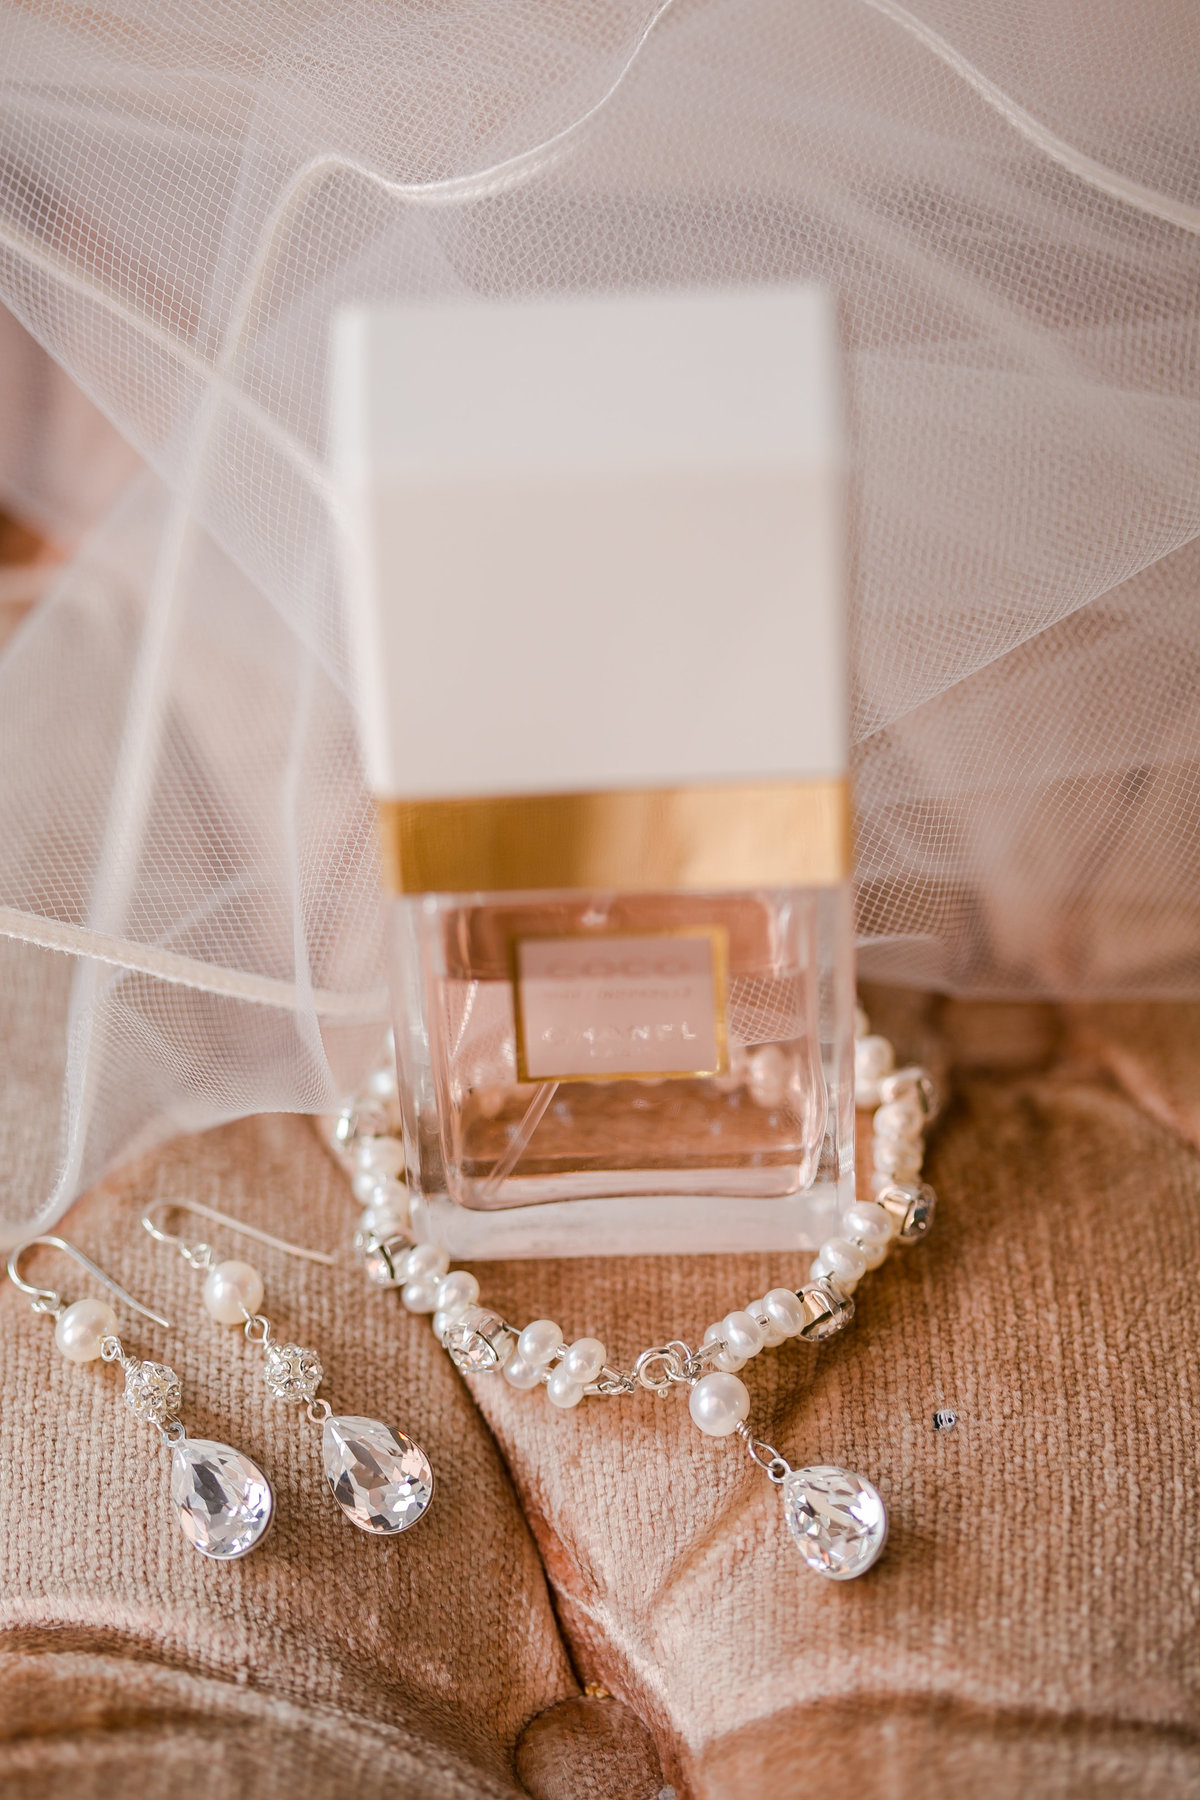 jewelry and perfume wedding photo